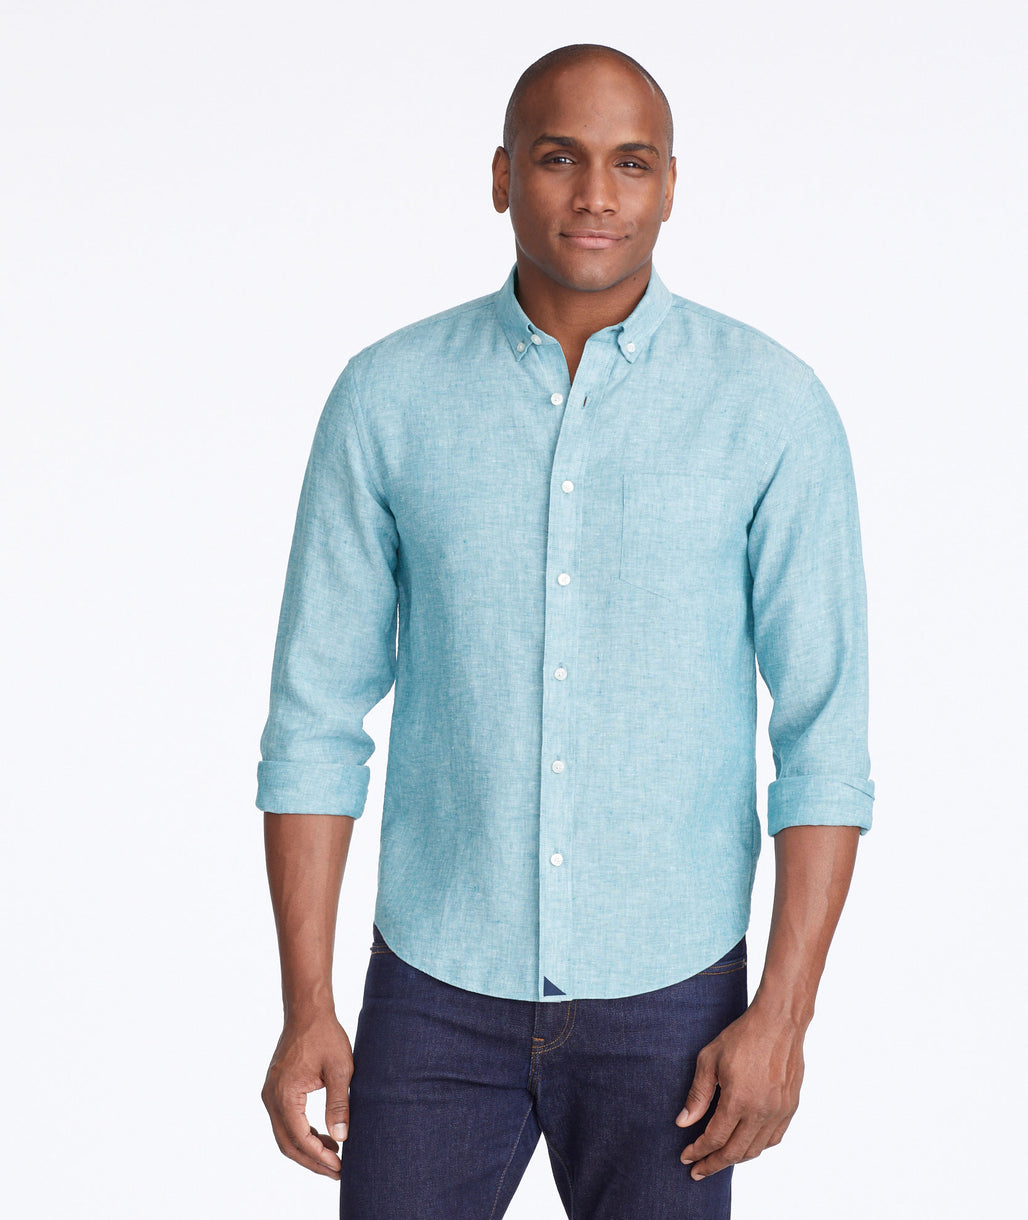 Model wearing a Mid Green Wrinkle-Resistant Linen Coltibuono Shirt